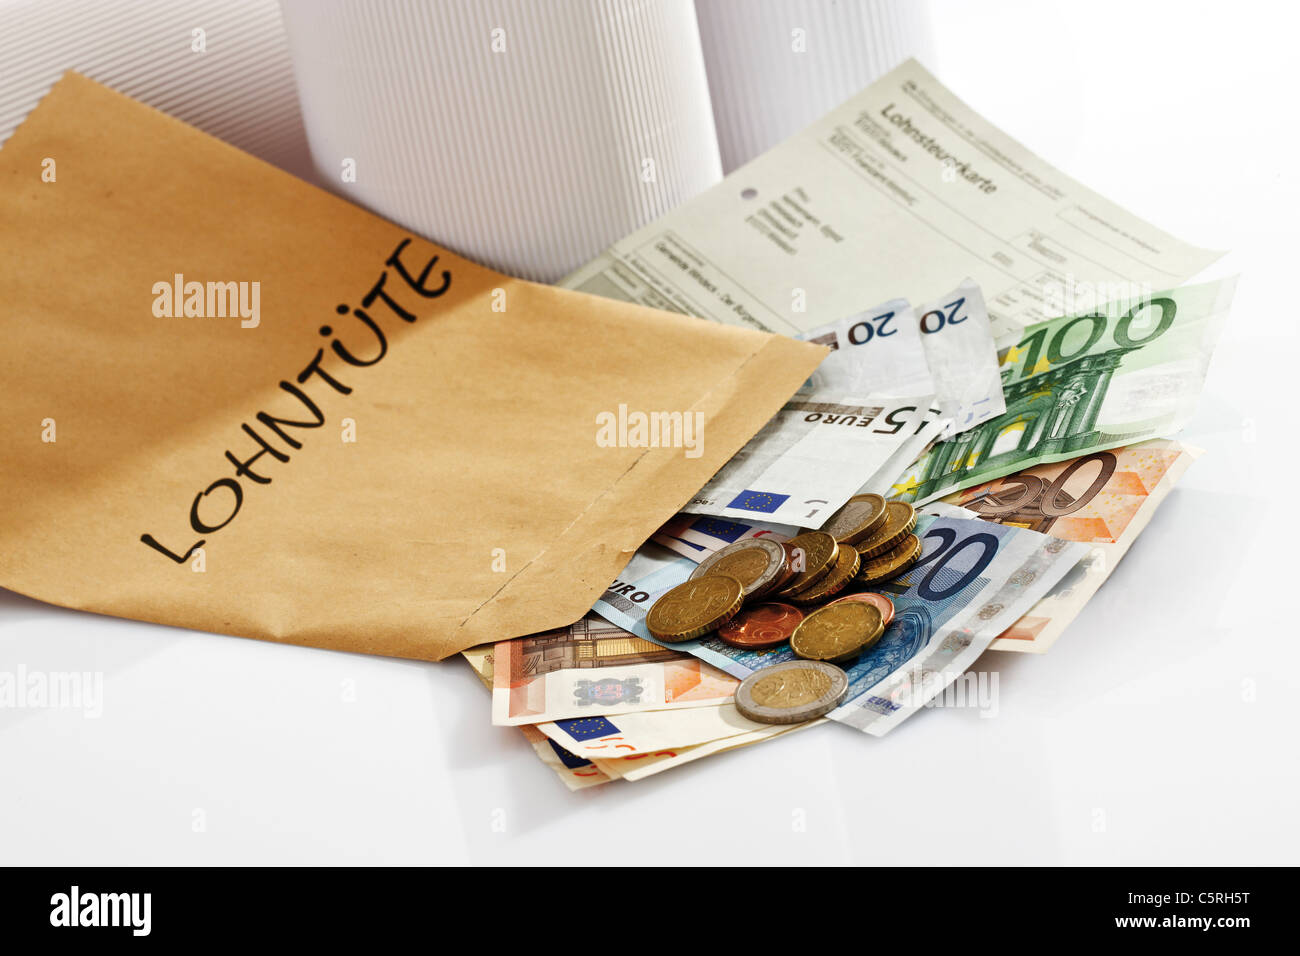 Tax card, Euro coins and Euro bank notes in wage packet - Stock Image